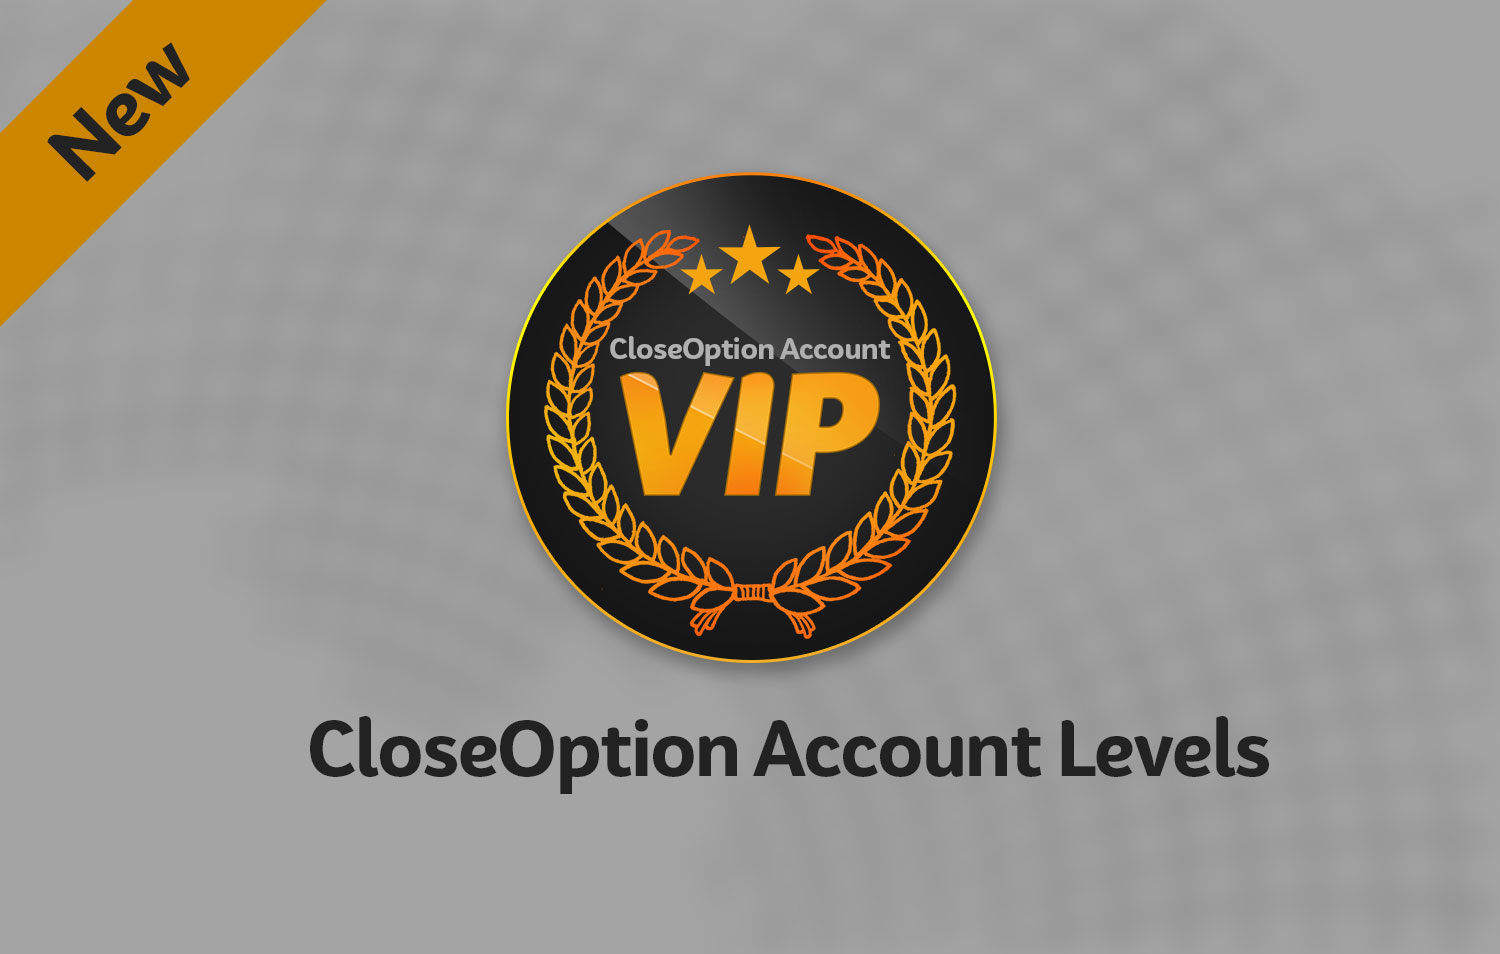 CloseOption Account Levels